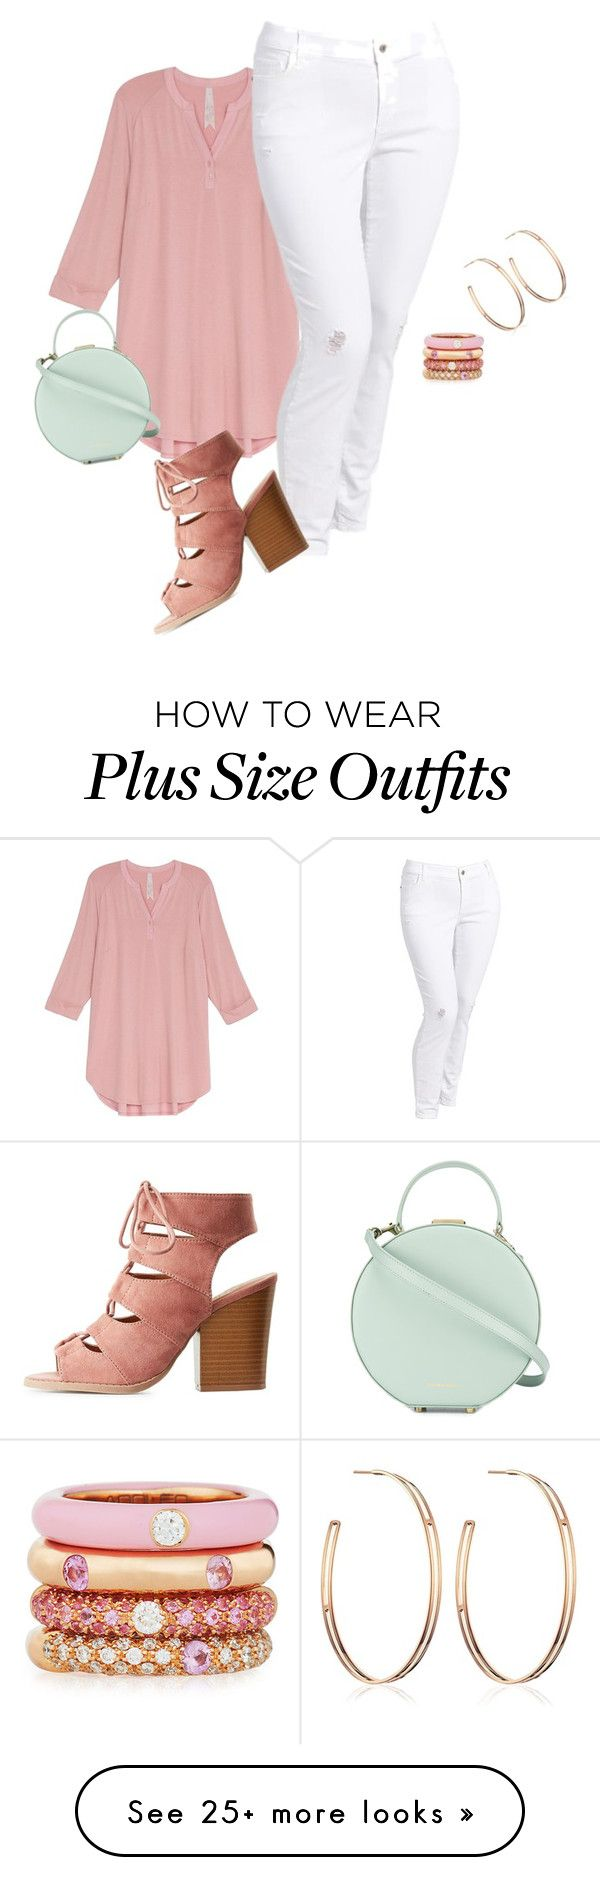 """Plus size, spring/summer vibes"" by xtrak on Polyvore featuring Melissa McCarthy Seven7, Old Navy, Charlotte Russe, Tammy & Benjamin, Vita Fede, Adolfo Courrier and plus size clothing"